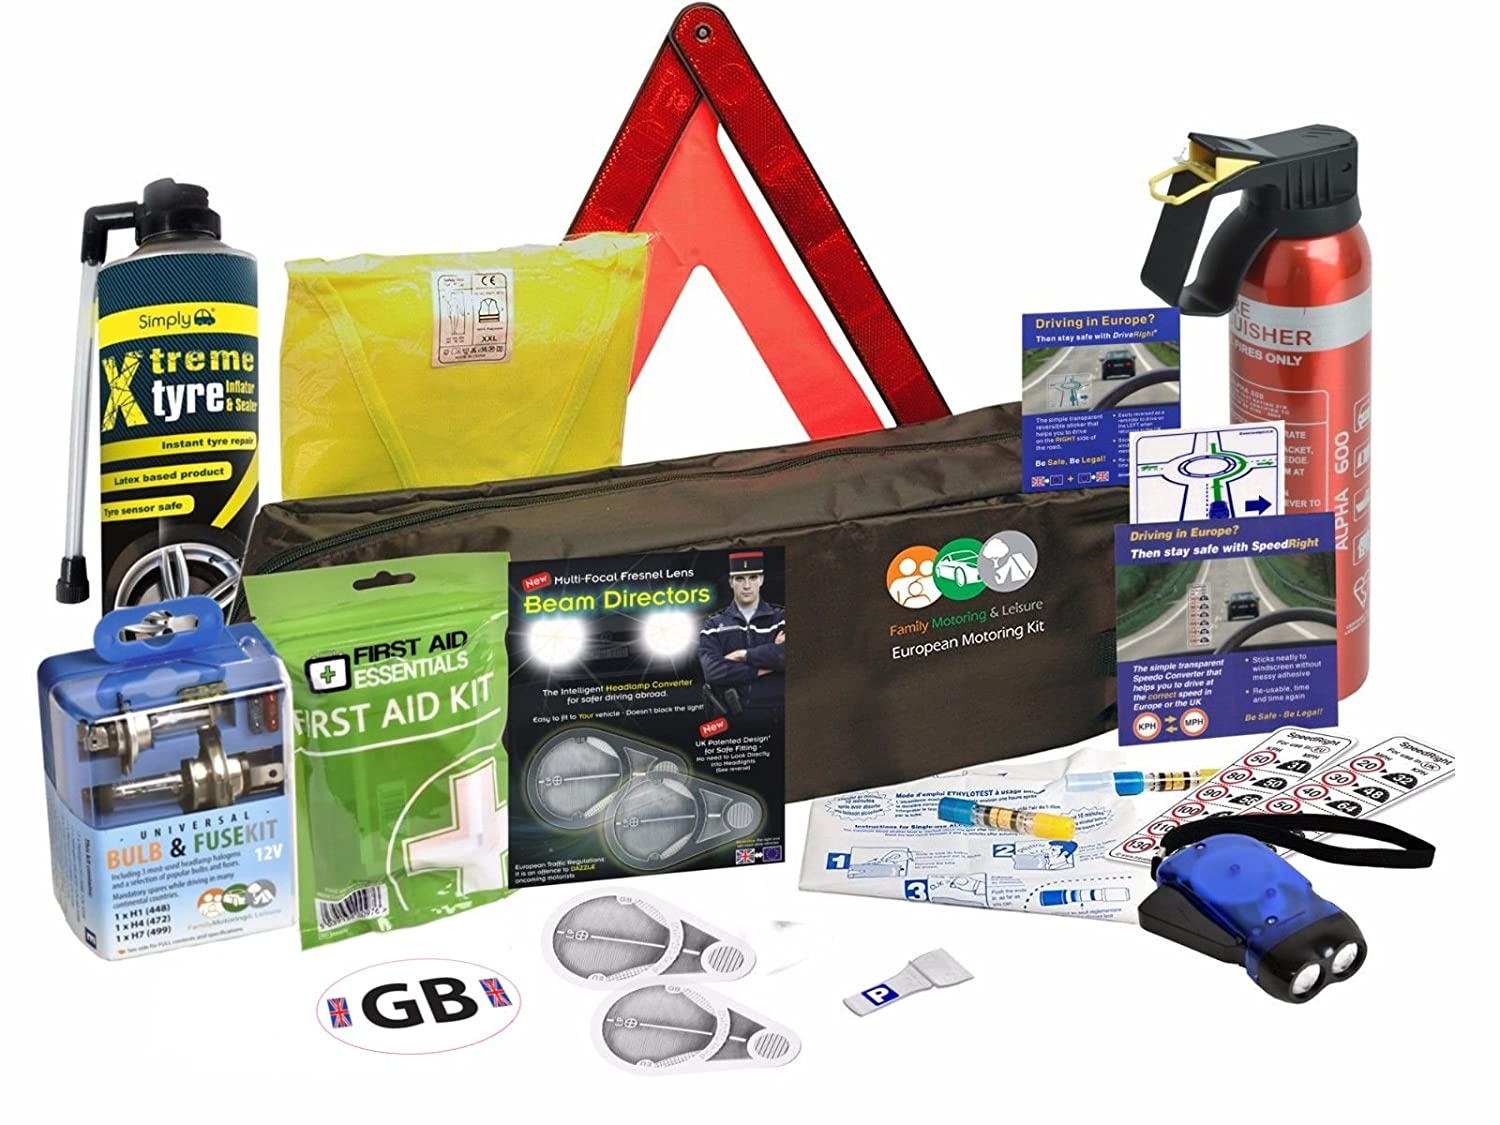 New Euro European Travel Kit For Driving In France Fresnel Lens With French Breathalysers 1-9 (European Driving Kit 1) Family Motoring & Leisure